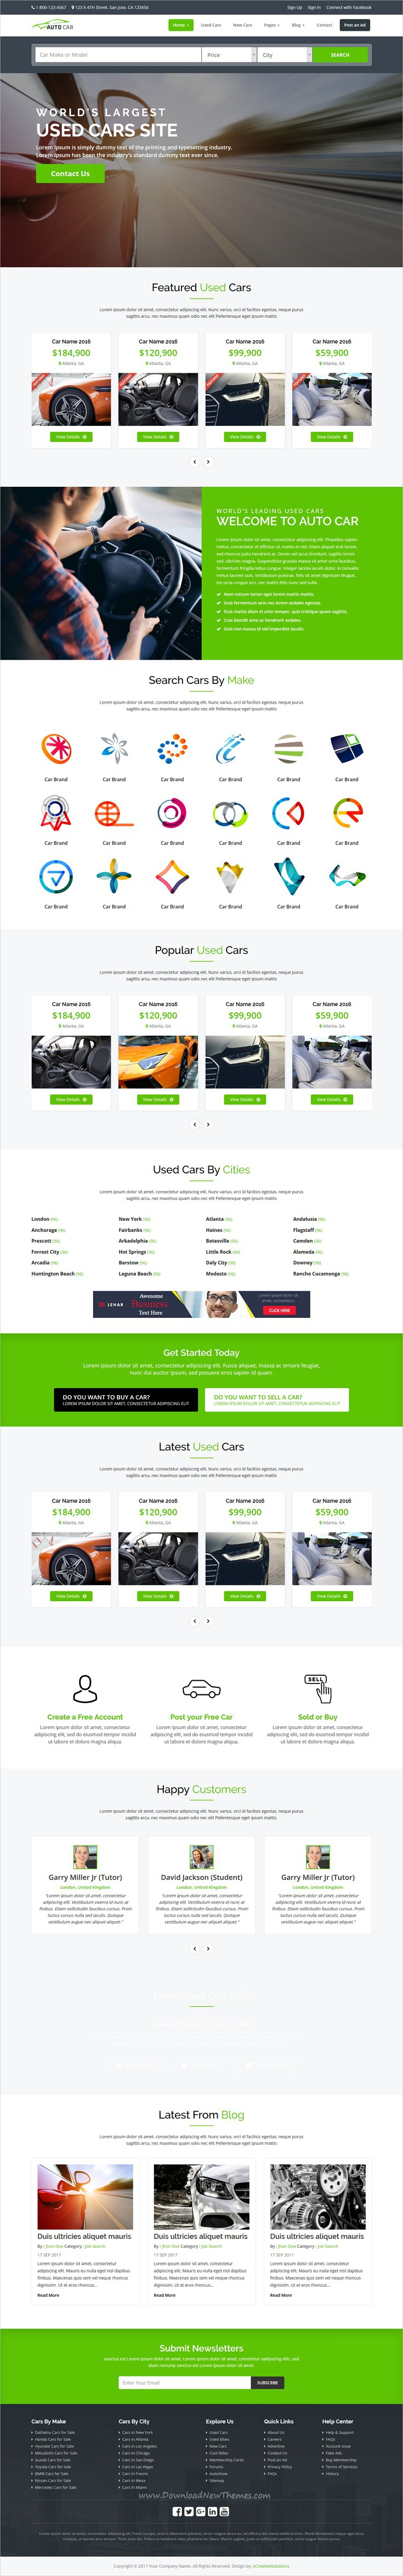 AutoCar - Online Used Cars Template | Template, Ads and Graphic ...